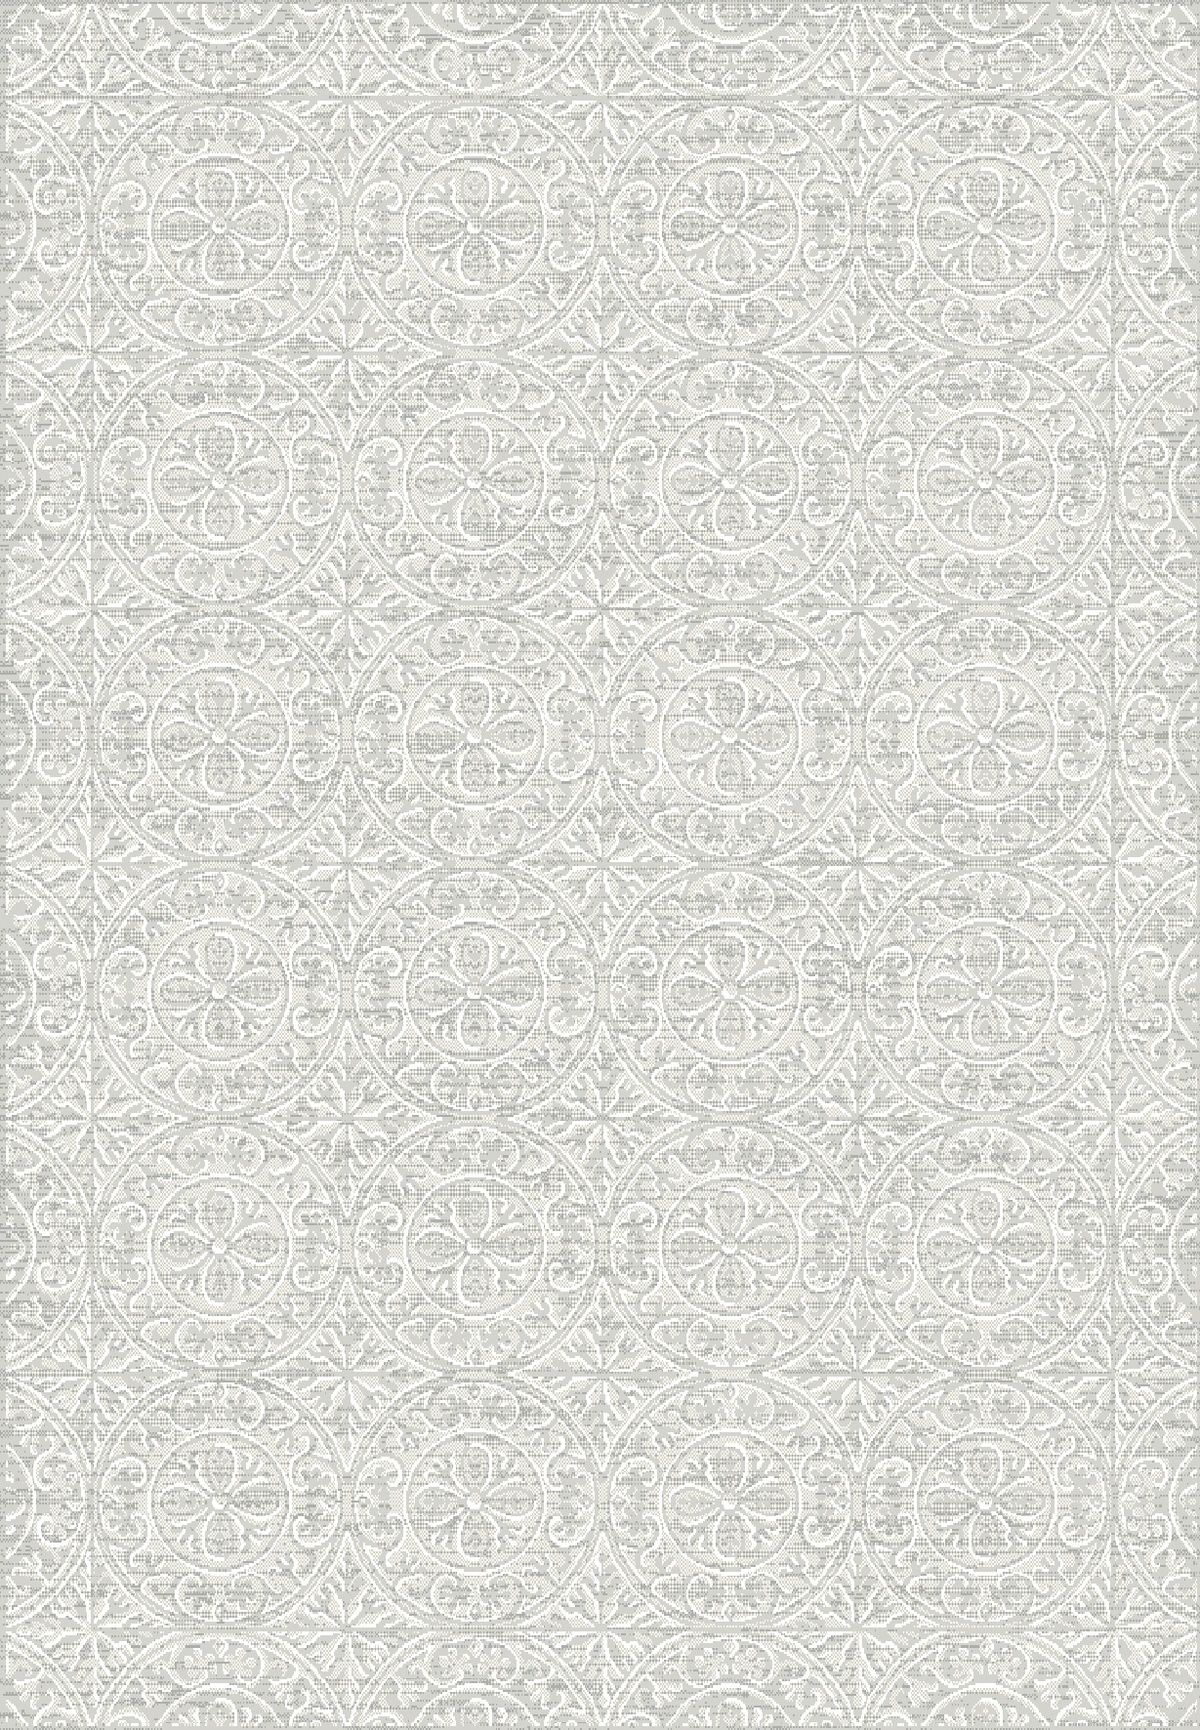 Best 12148 902 Rug Color Gray Size 7 10 X 10 10 400 x 300